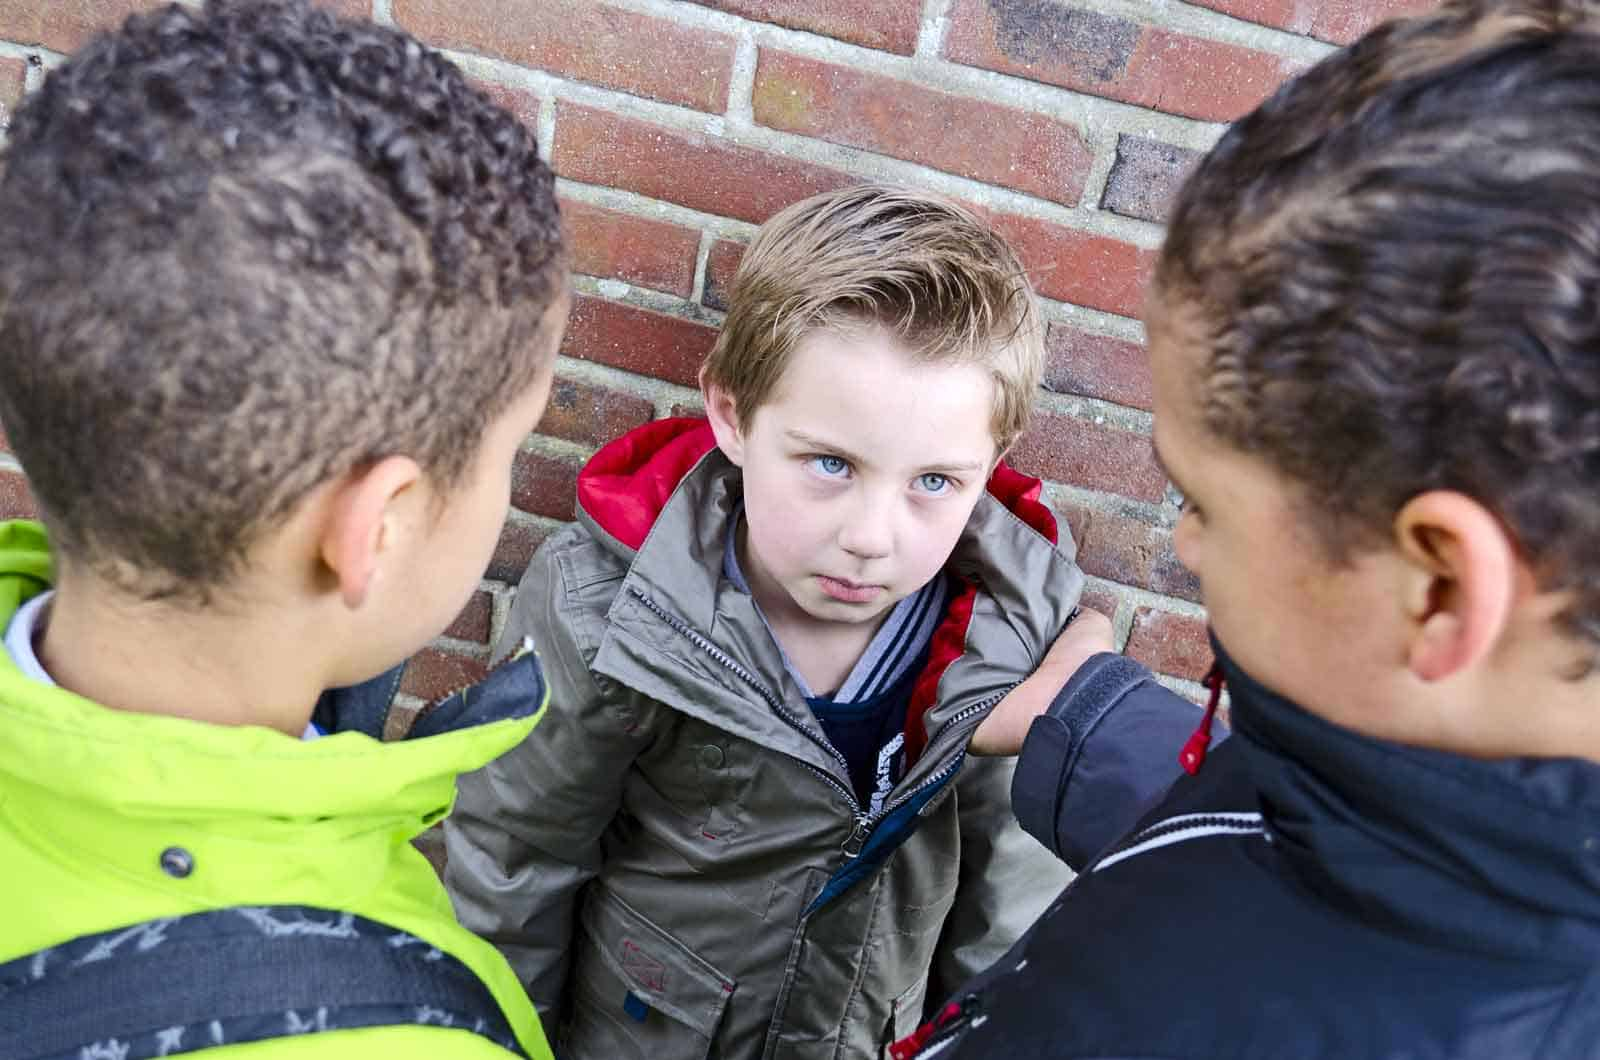 Conflict Resolution Strategies Are Inappropriate For Dealing With Bullying